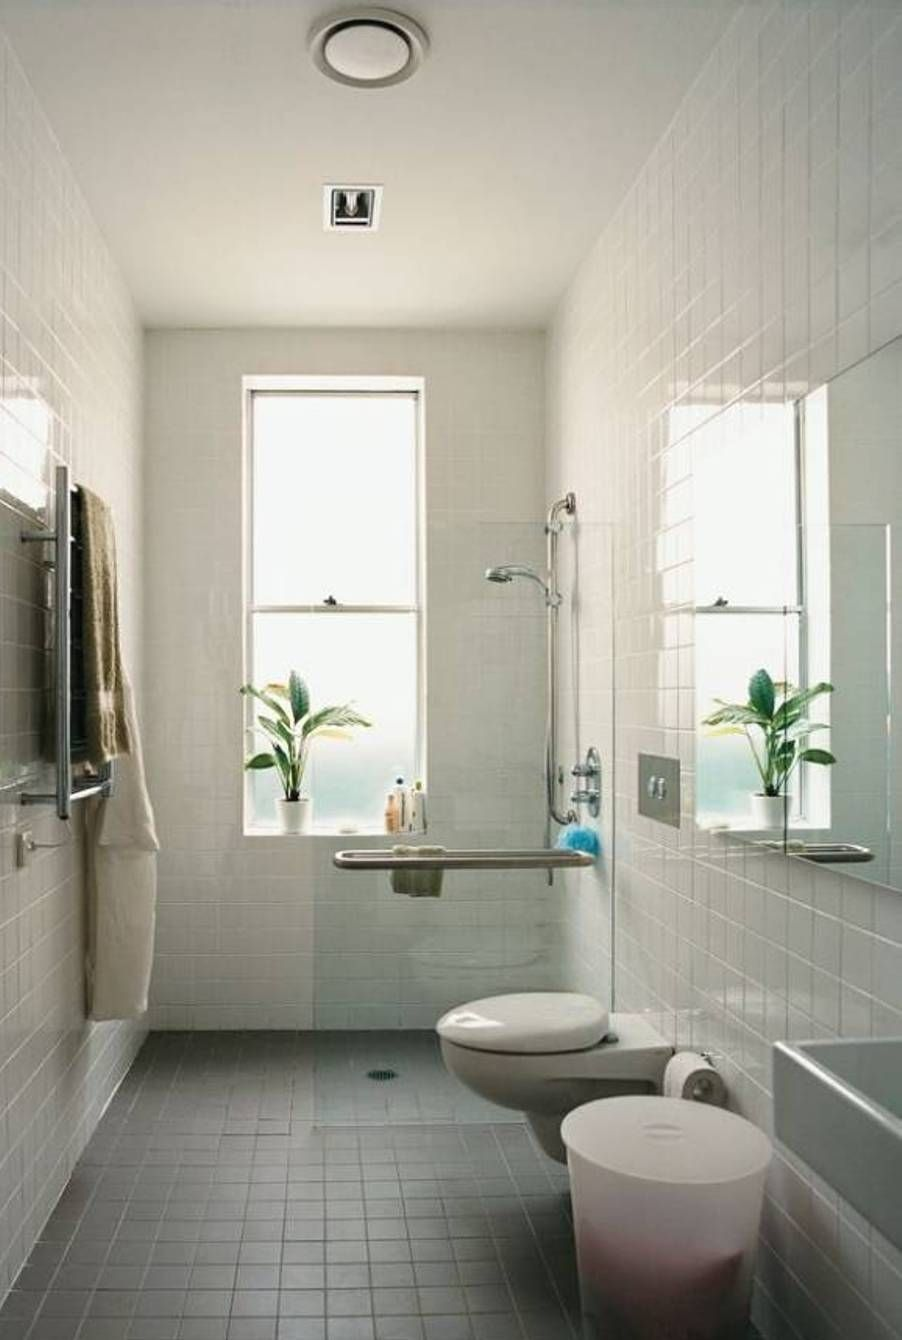 Bathroom Window Ideas Small Bathrooms Part - 32: Image Result For Tiny Bathroom Ideas Window